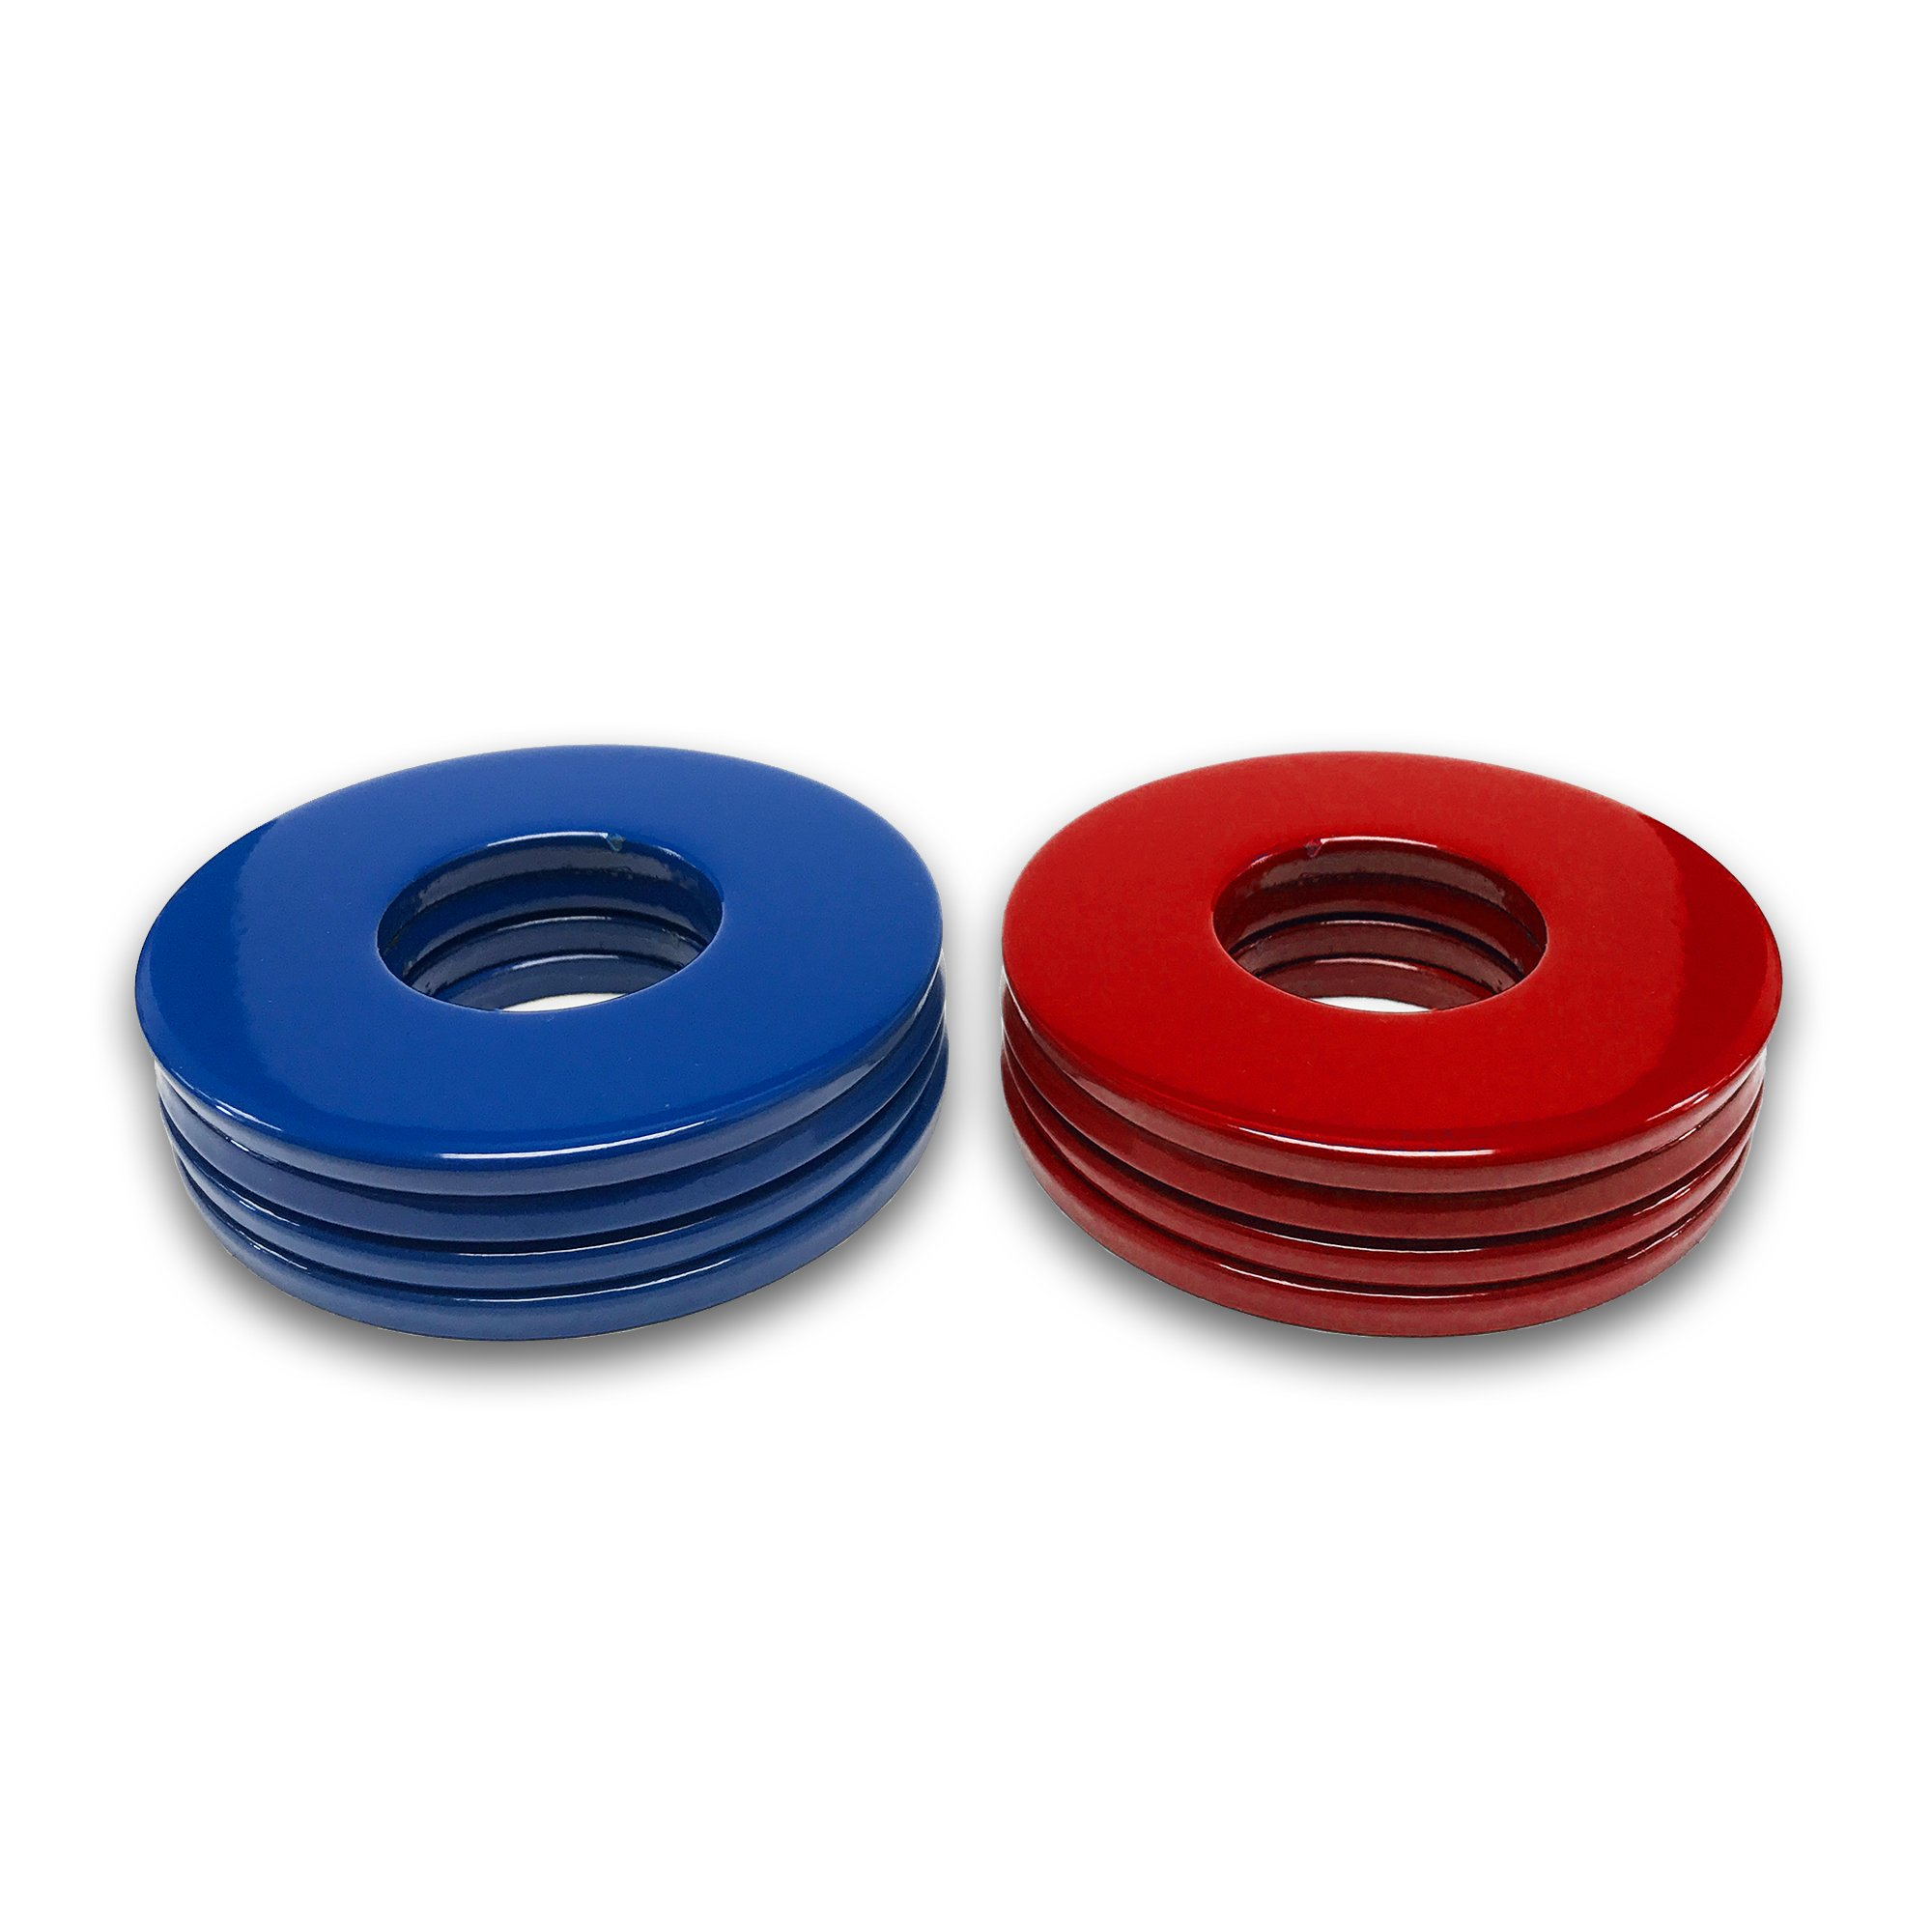 4 Blue/4 Red Powder Coated Replacement 2-1/2 Washer Toss Pitching Game Washers - High Gloss! by Washer Toss Pros